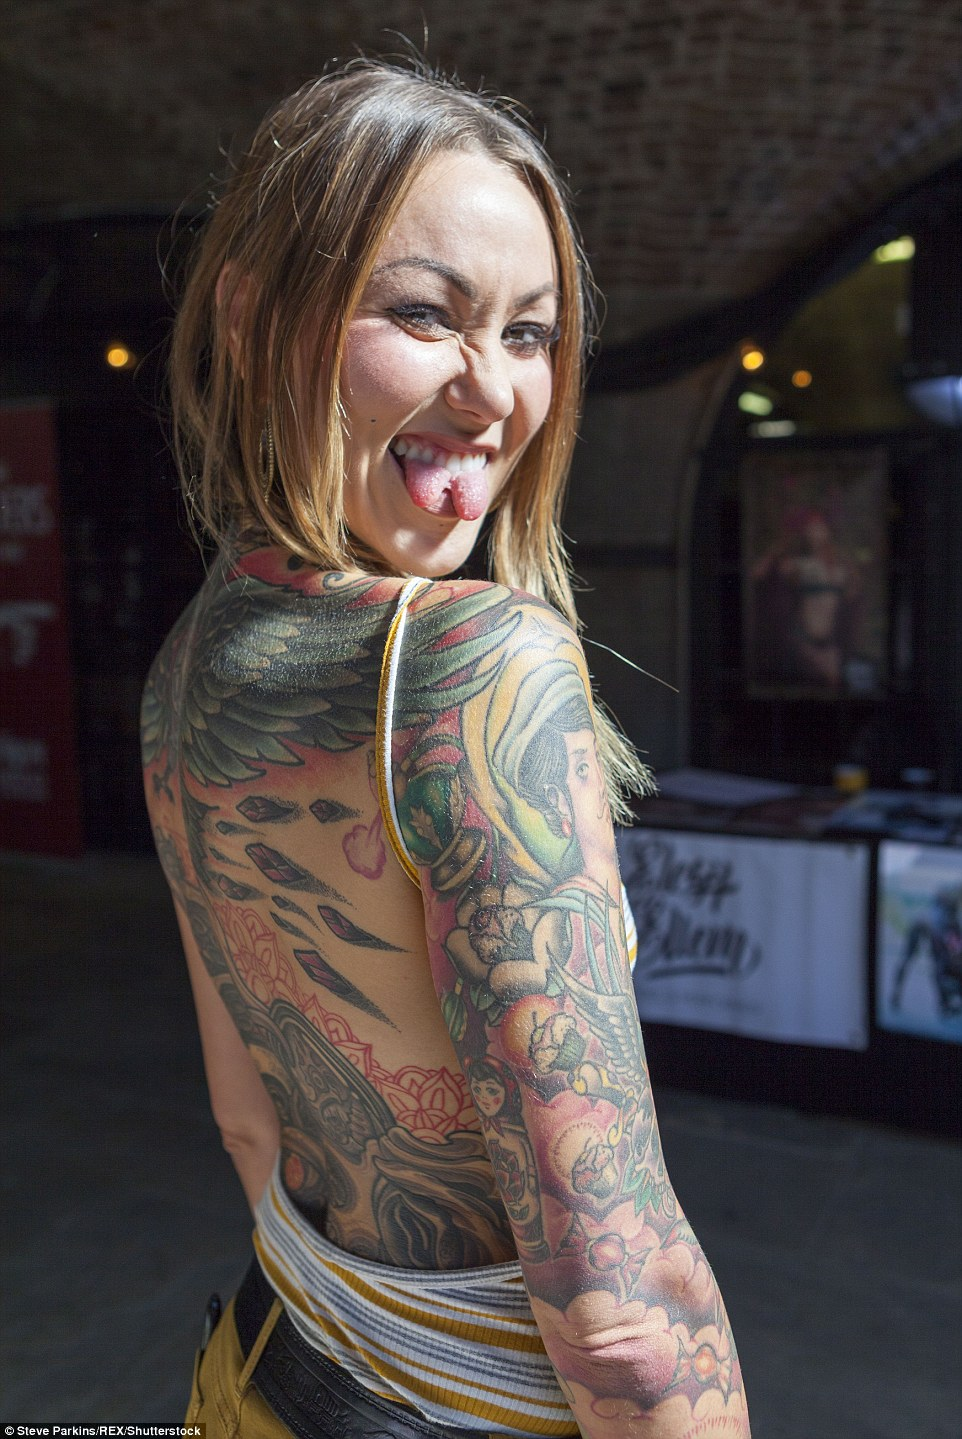 Swedish model and burlesque performer Elegy Ellem proudly shows off her extensive tattoos - and her split tongue